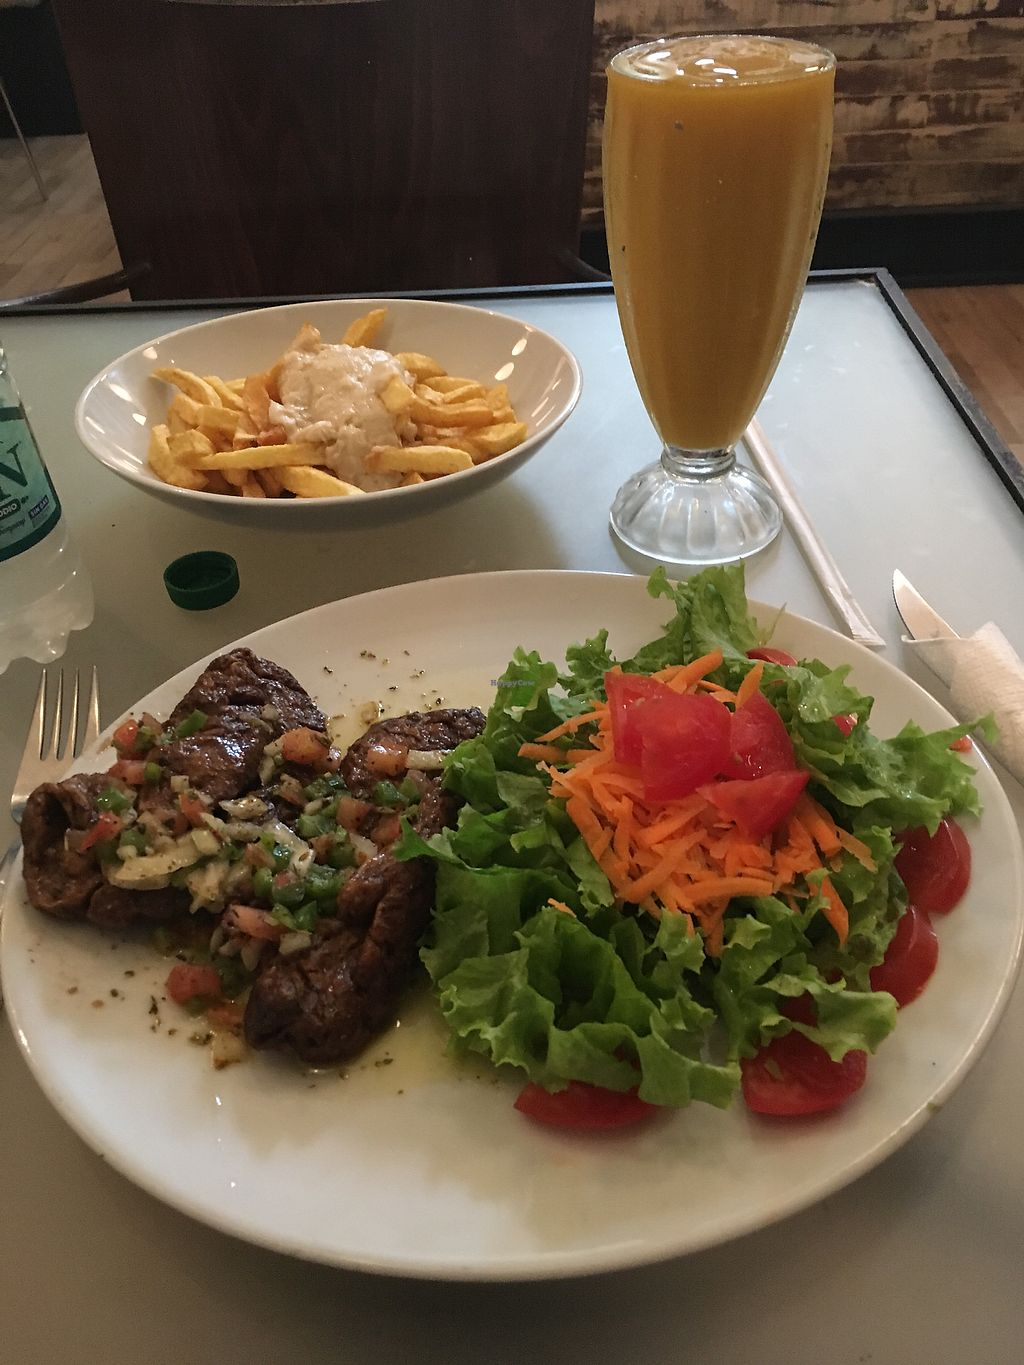 """Photo of Loving Hut  by <a href=""""/members/profile/thelifeofpie"""">thelifeofpie</a> <br/>Seitan steak... Hail Seitan!! <br/> February 7, 2018  - <a href='/contact/abuse/image/88227/355875'>Report</a>"""